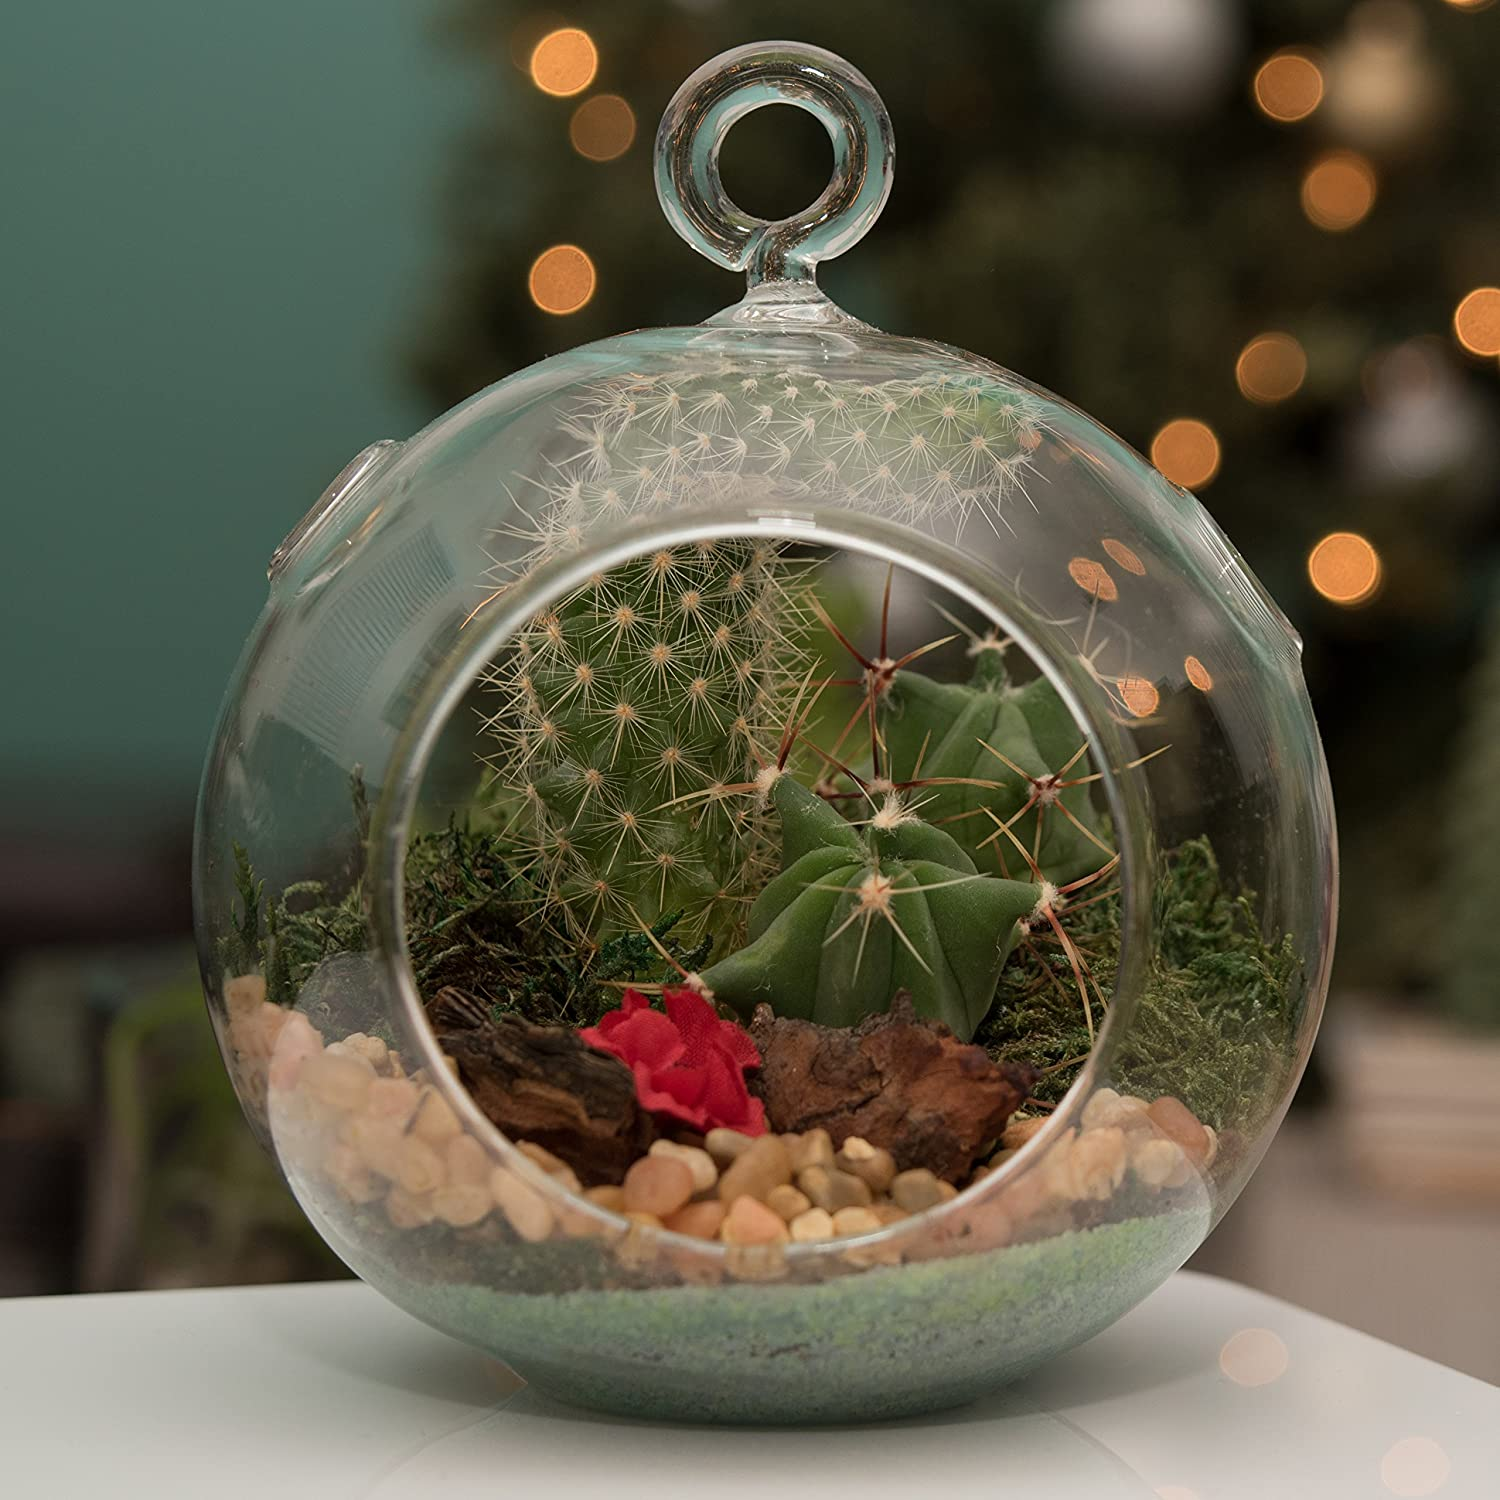 MyGift 7-Inch Large Clear Glass Hanging Air Plant Terrarium Ball Votive Candle Holder w Flat Base Loop Hook